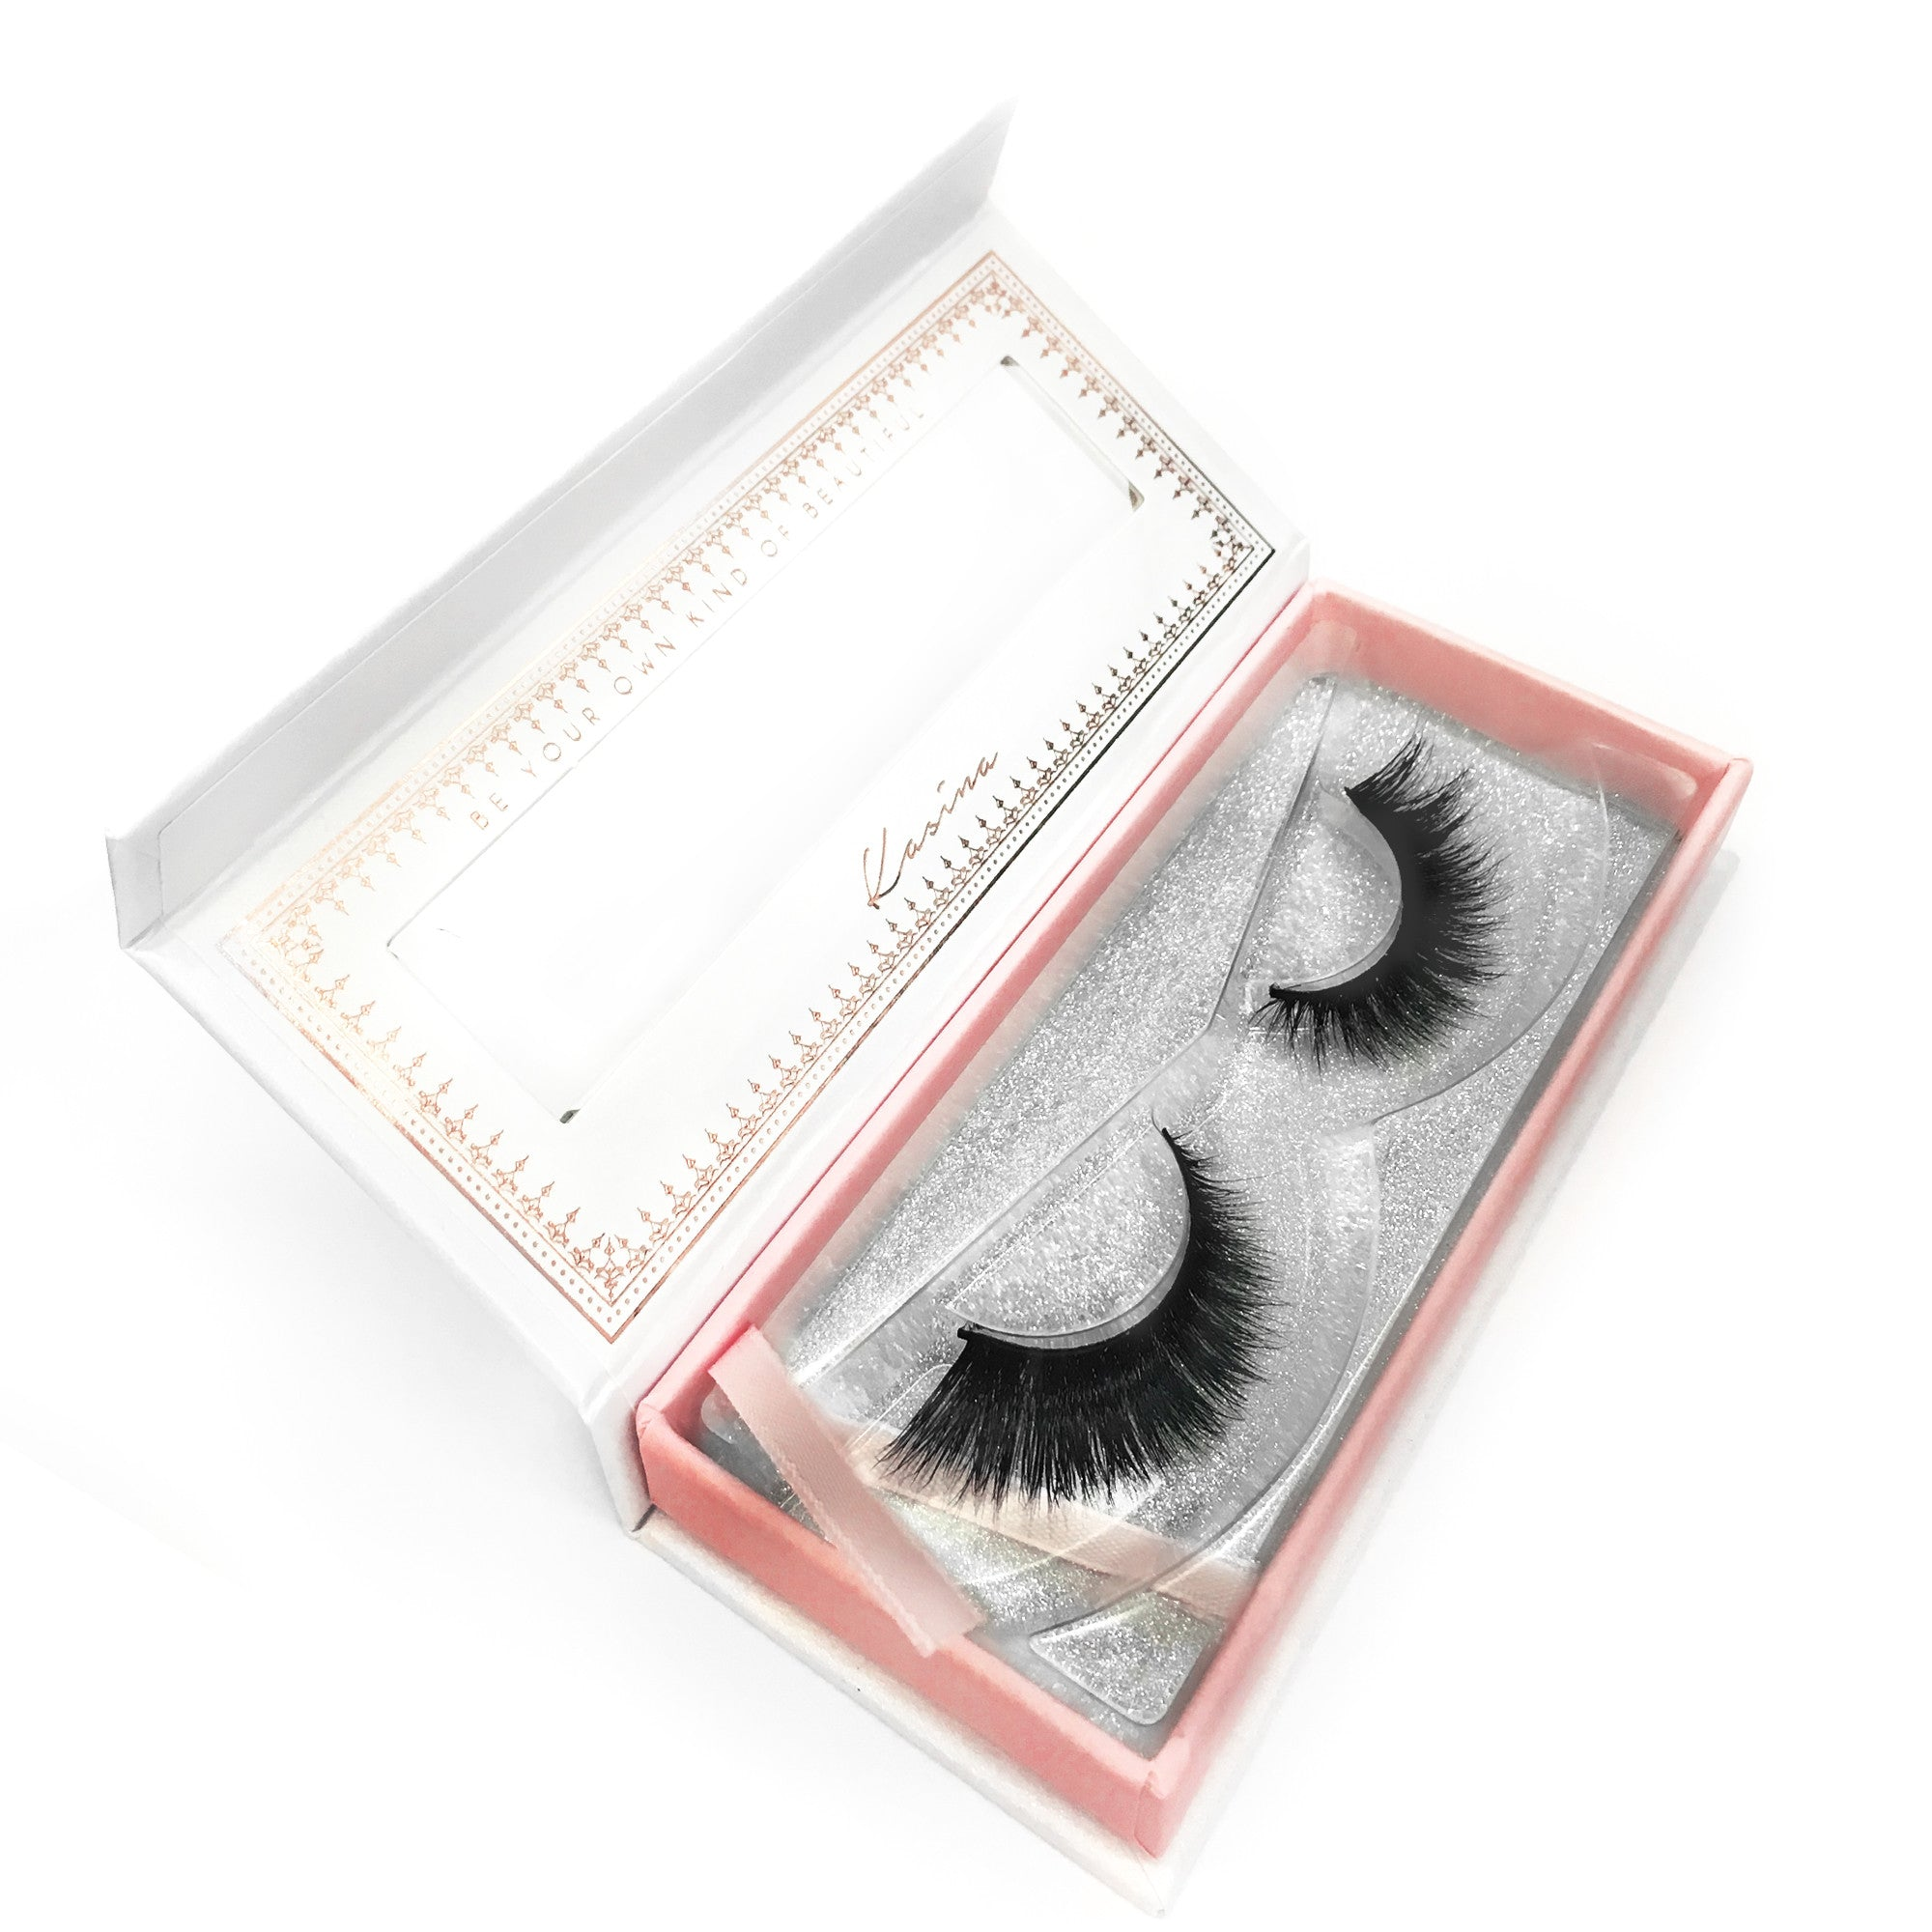 KASINA Luxuary Mink Lashes K-POP 005.  '2NE1'